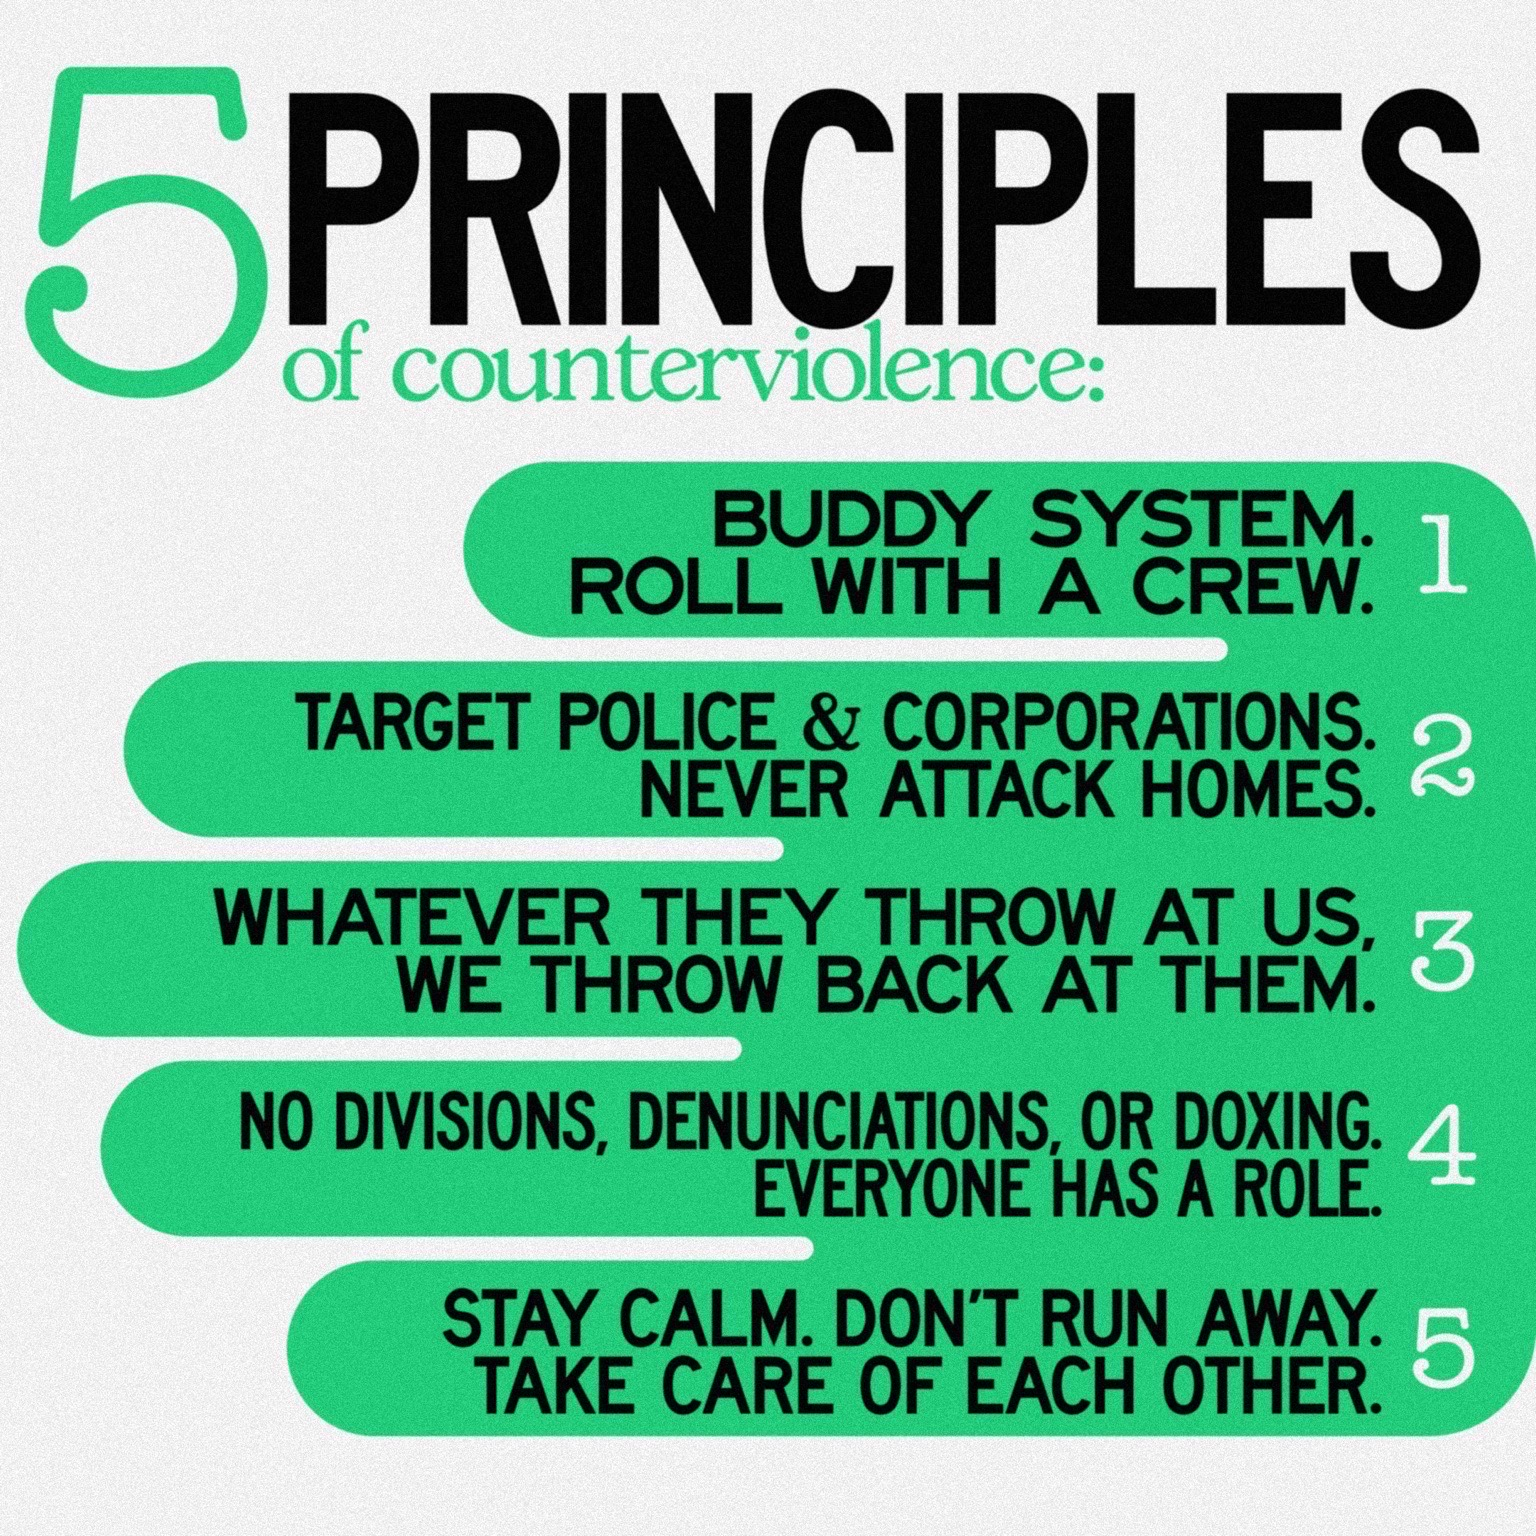 Five Principles of Counterviolence